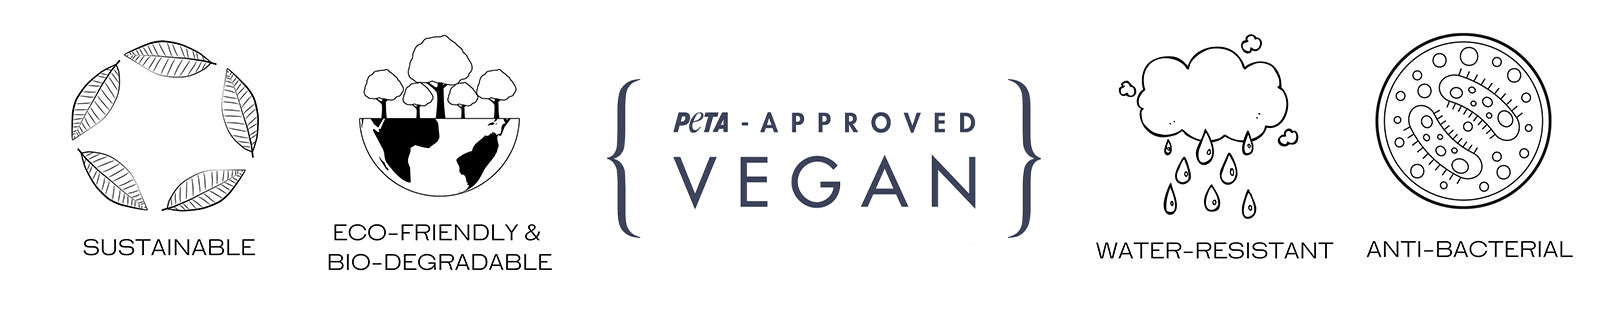 sustainable, biodegradable, eco-friendly, peta-approved vegan, waterproof and anti-bacterial logos aligned